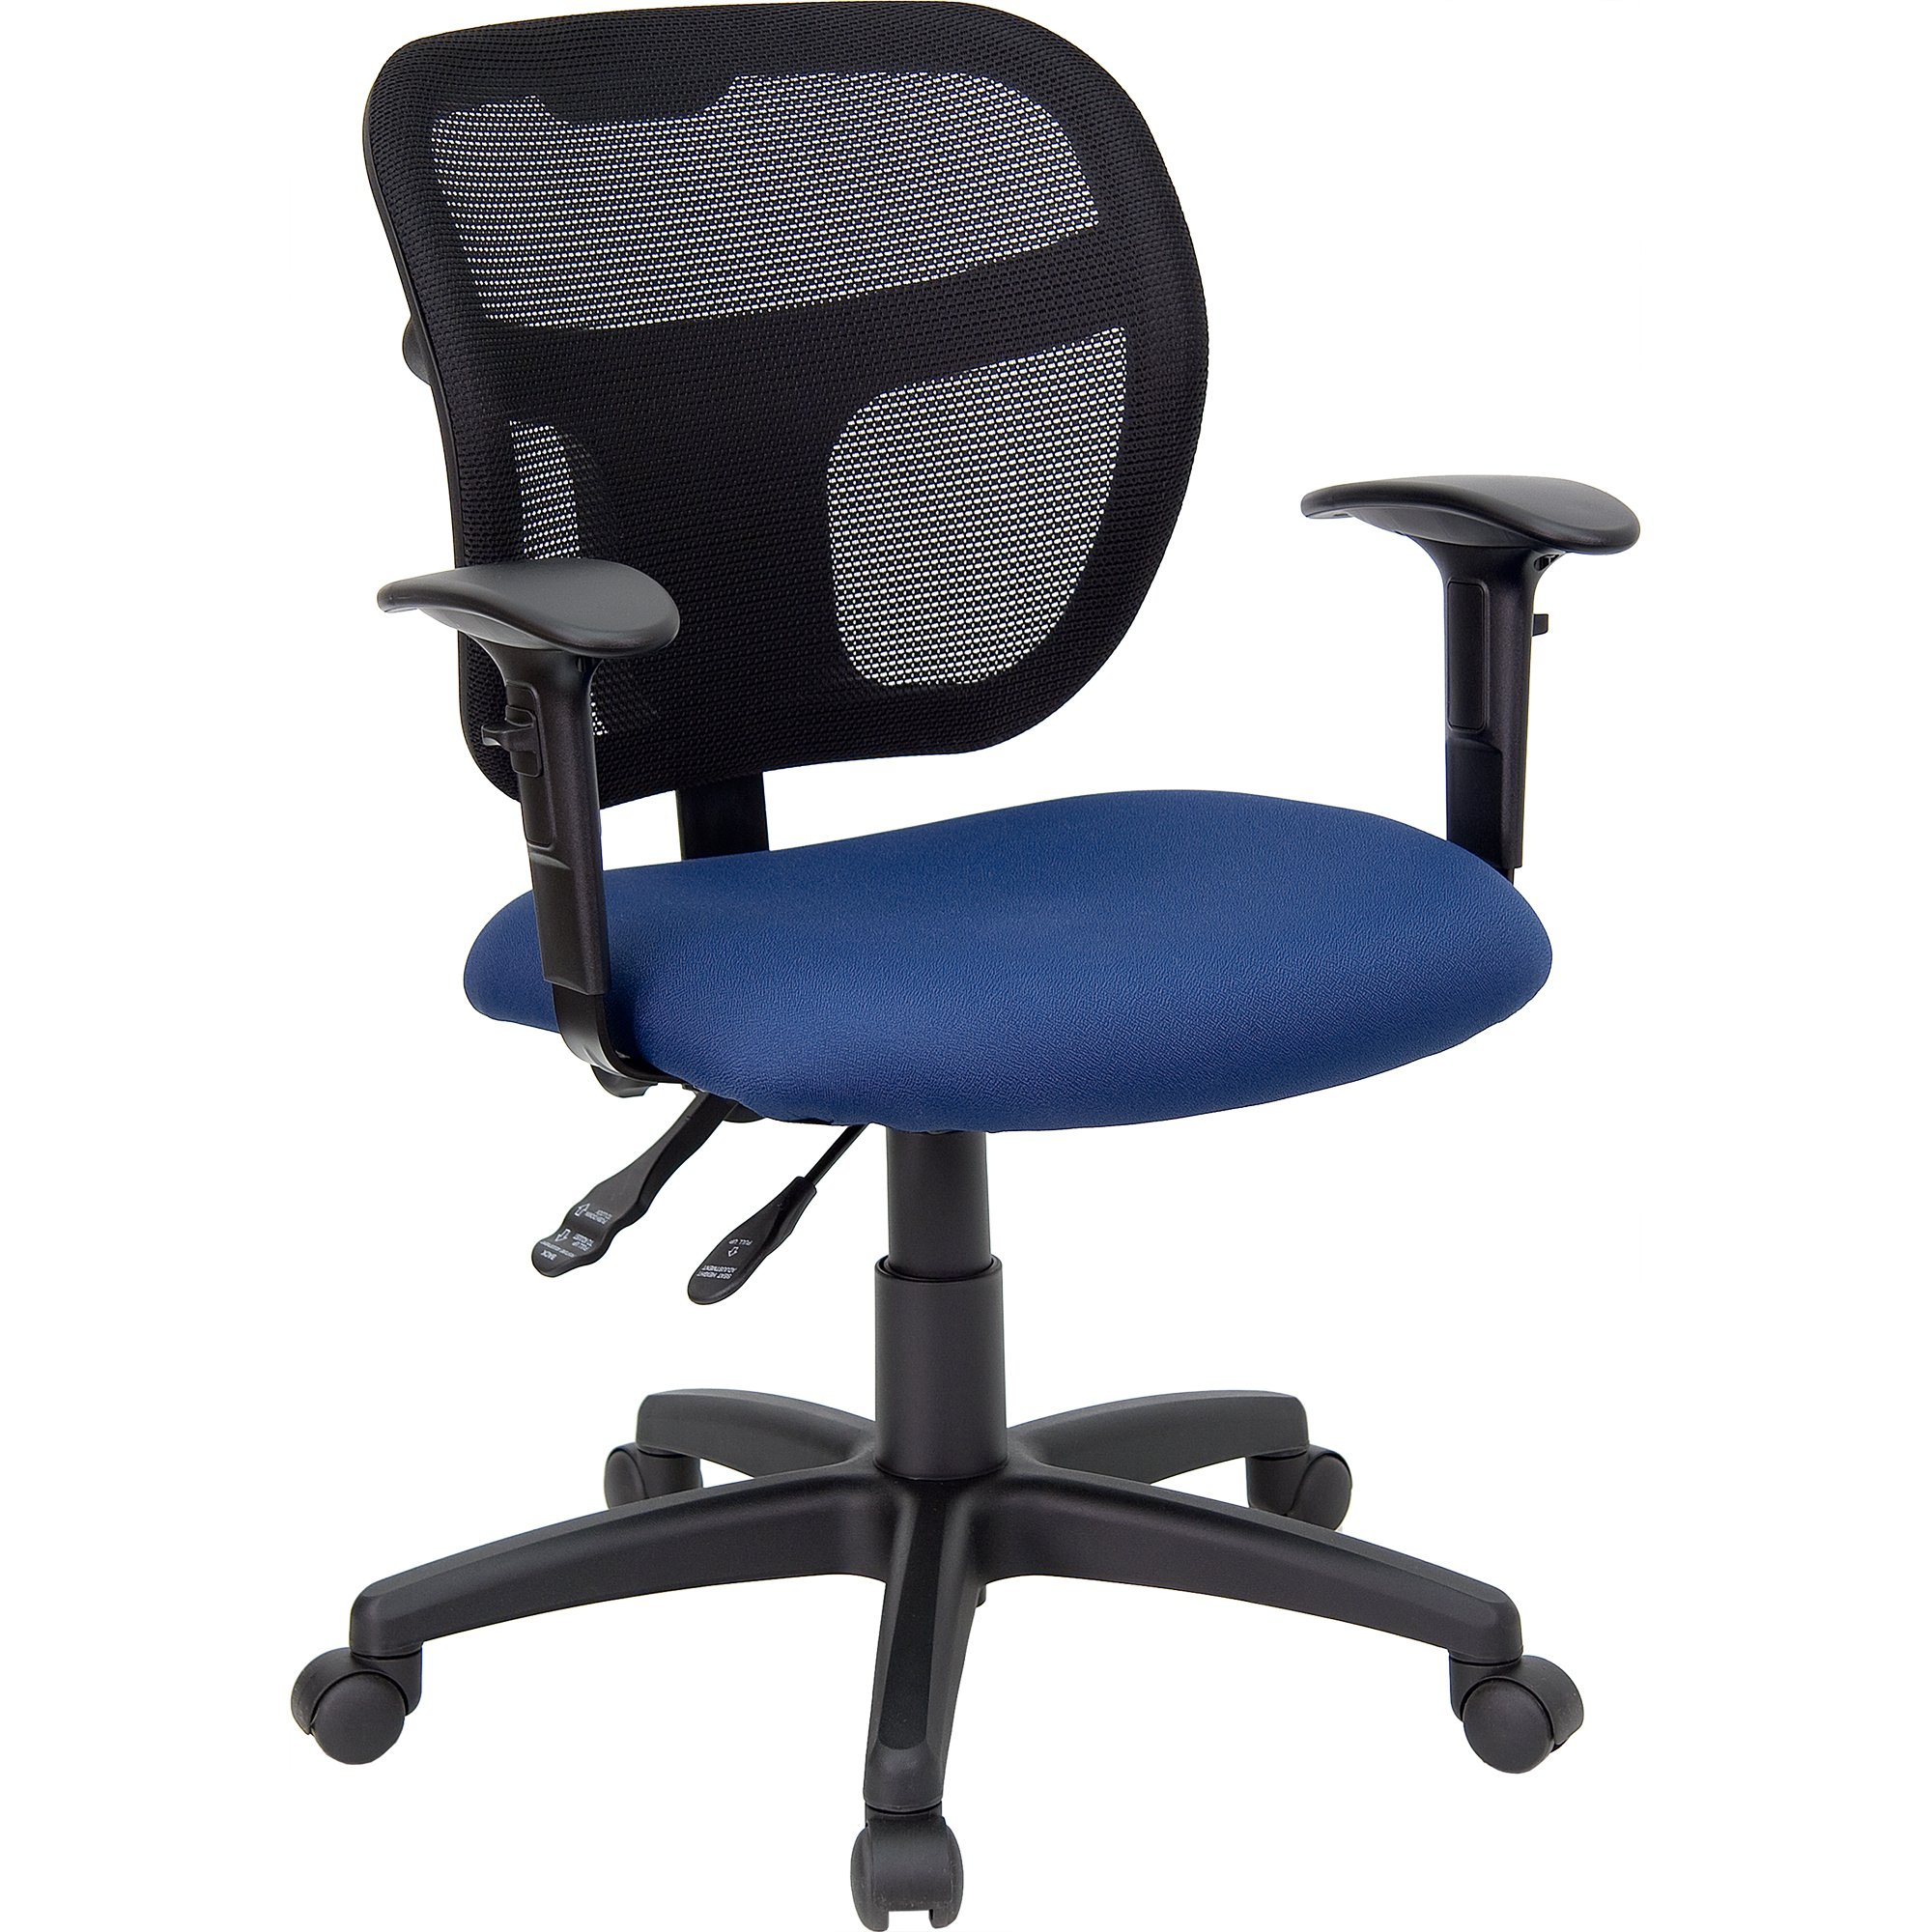 Shop Theo Mesh Dual Paddle Control Adjustable Swivel Ergonomic Regarding Theo Ii Swivel Chairs (Image 19 of 25)